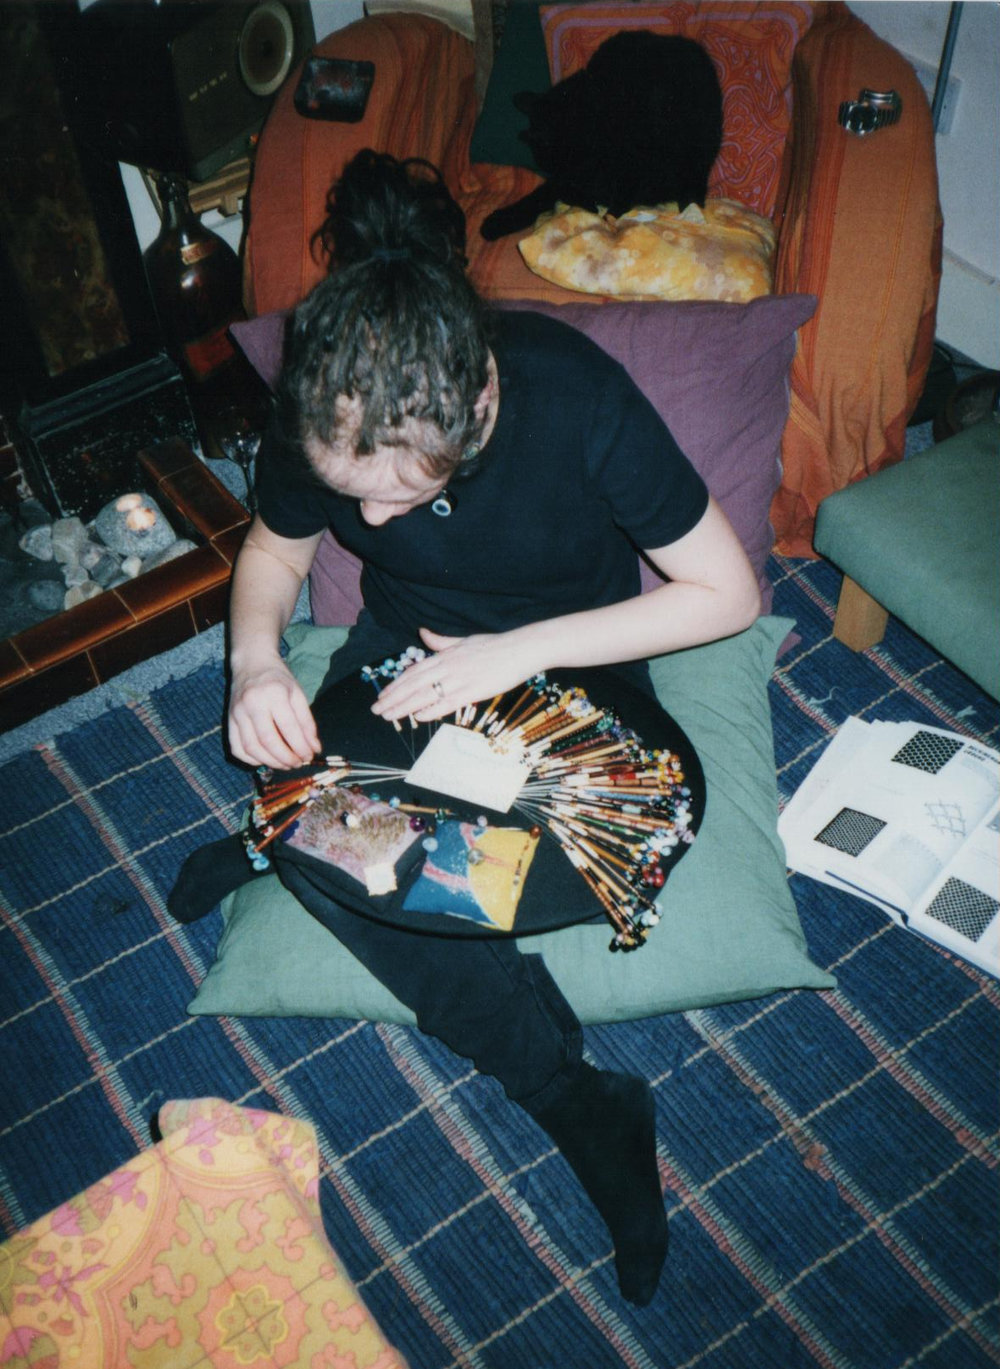 me, circa 1997/8? making torchon lace